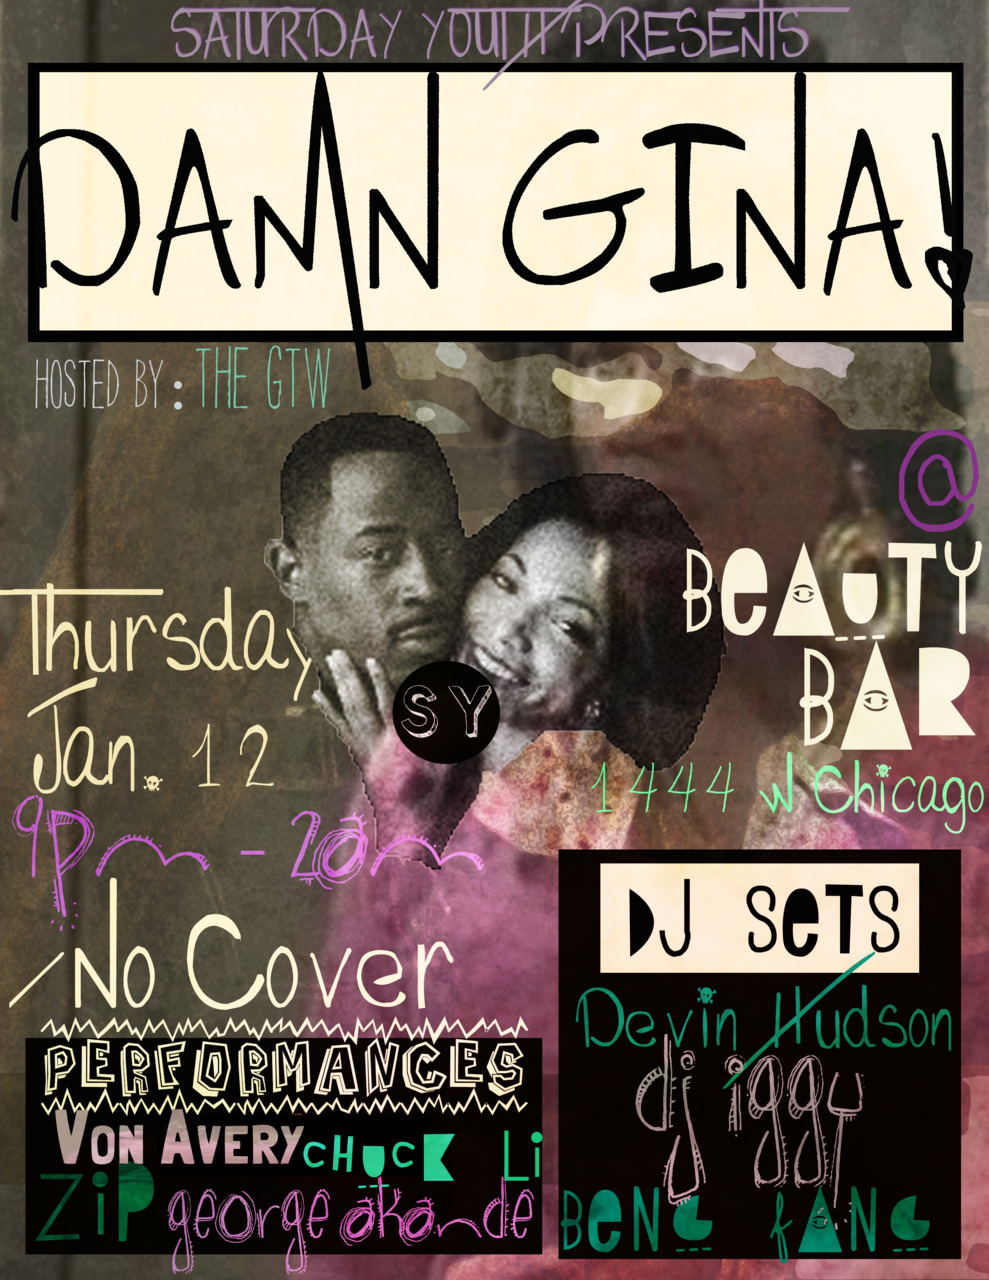 Our free party #DAMNGINA @beautybchicago this thursday w/ @djiggster @sirdevinhudson @bengfang @chicagolives @ziptopher @vonavery + more. No Cover. Hosted by @TheGTW.